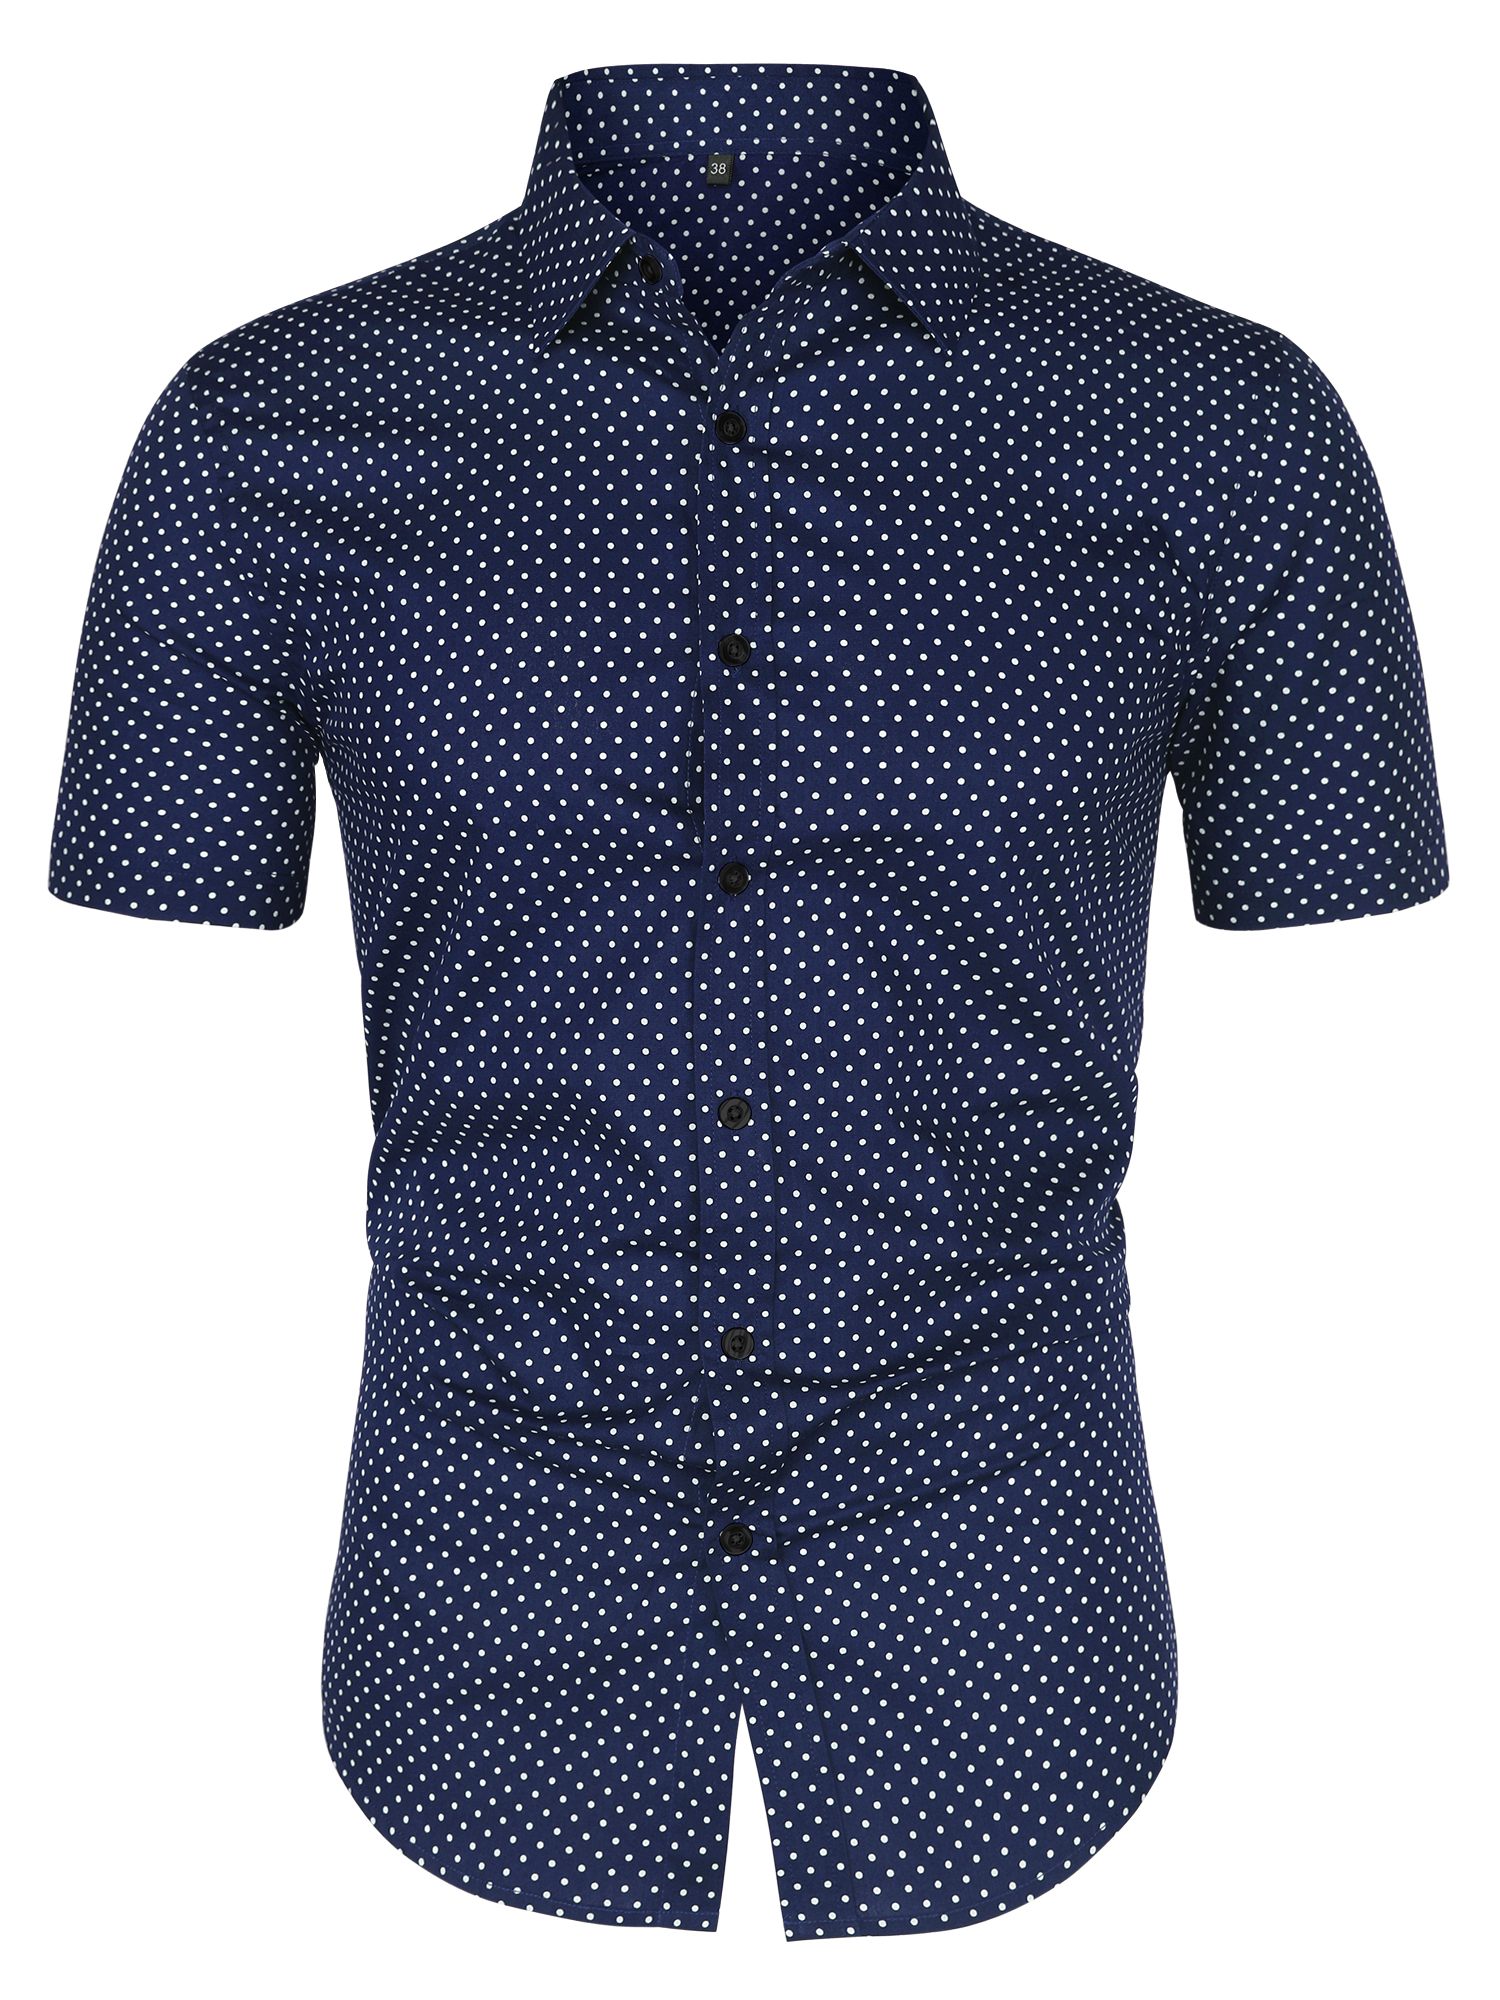 Men Short Sleeves Single Breasted Cotton Dots Shirt Blue L